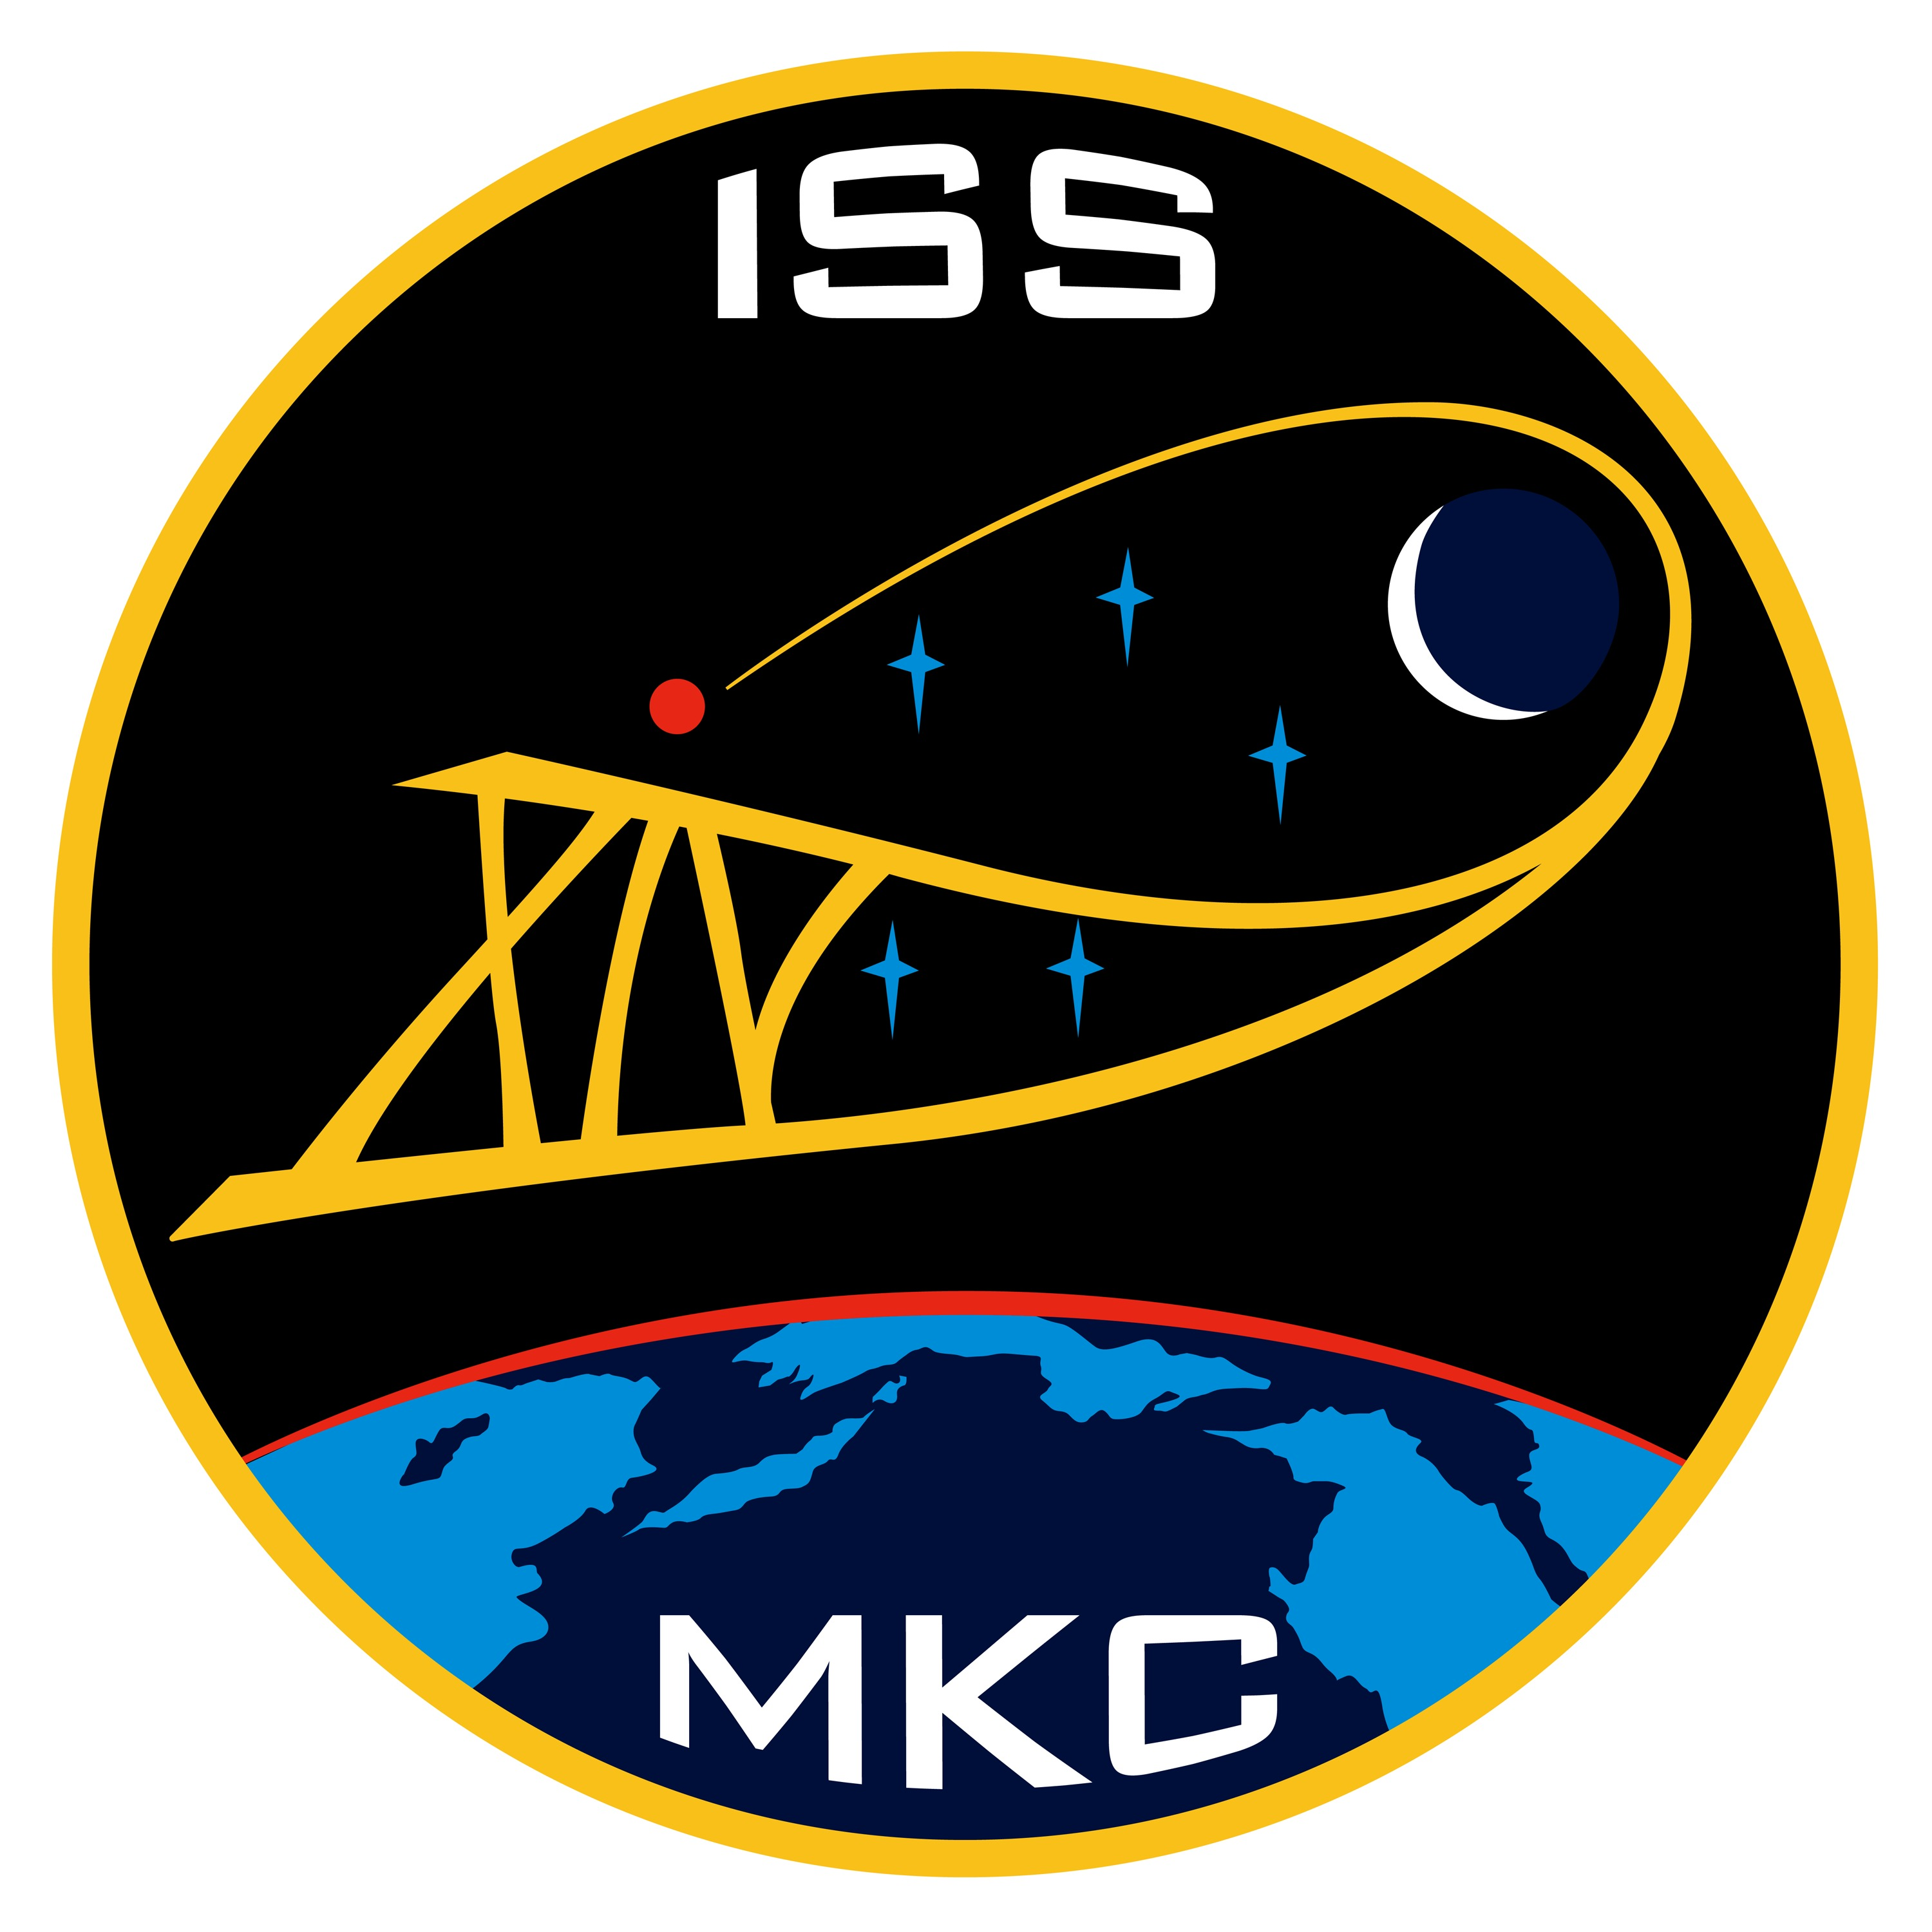 Iss14 mission insignia